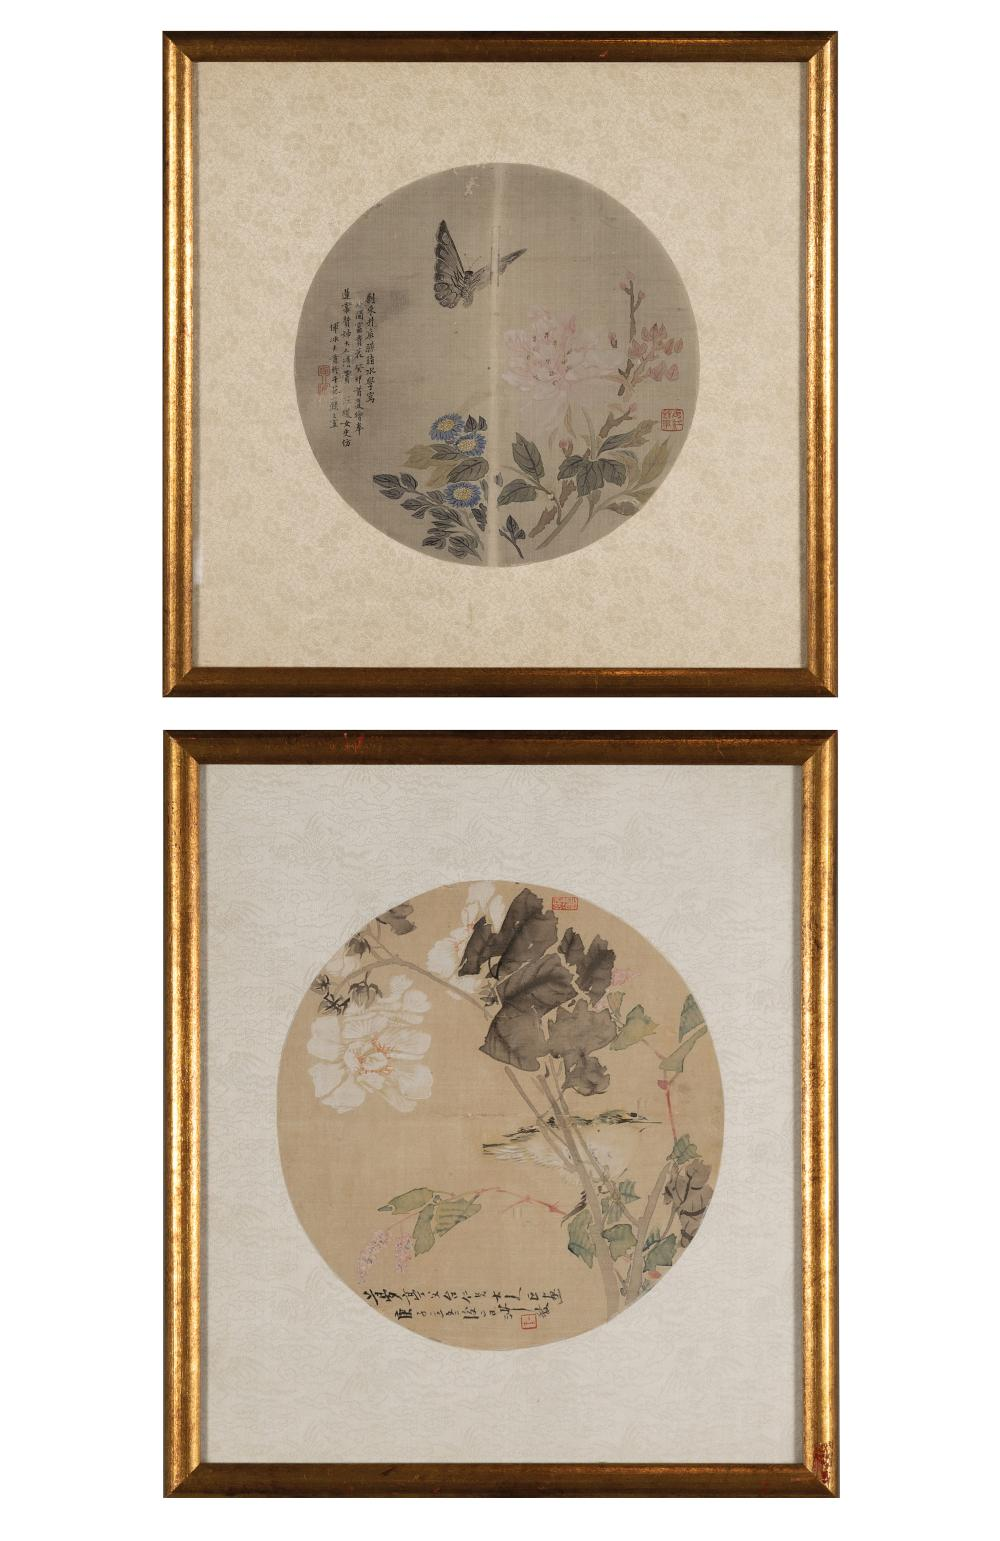 SET OF 2 CHINESE FAN PAINTINGS, QING DYNASTY